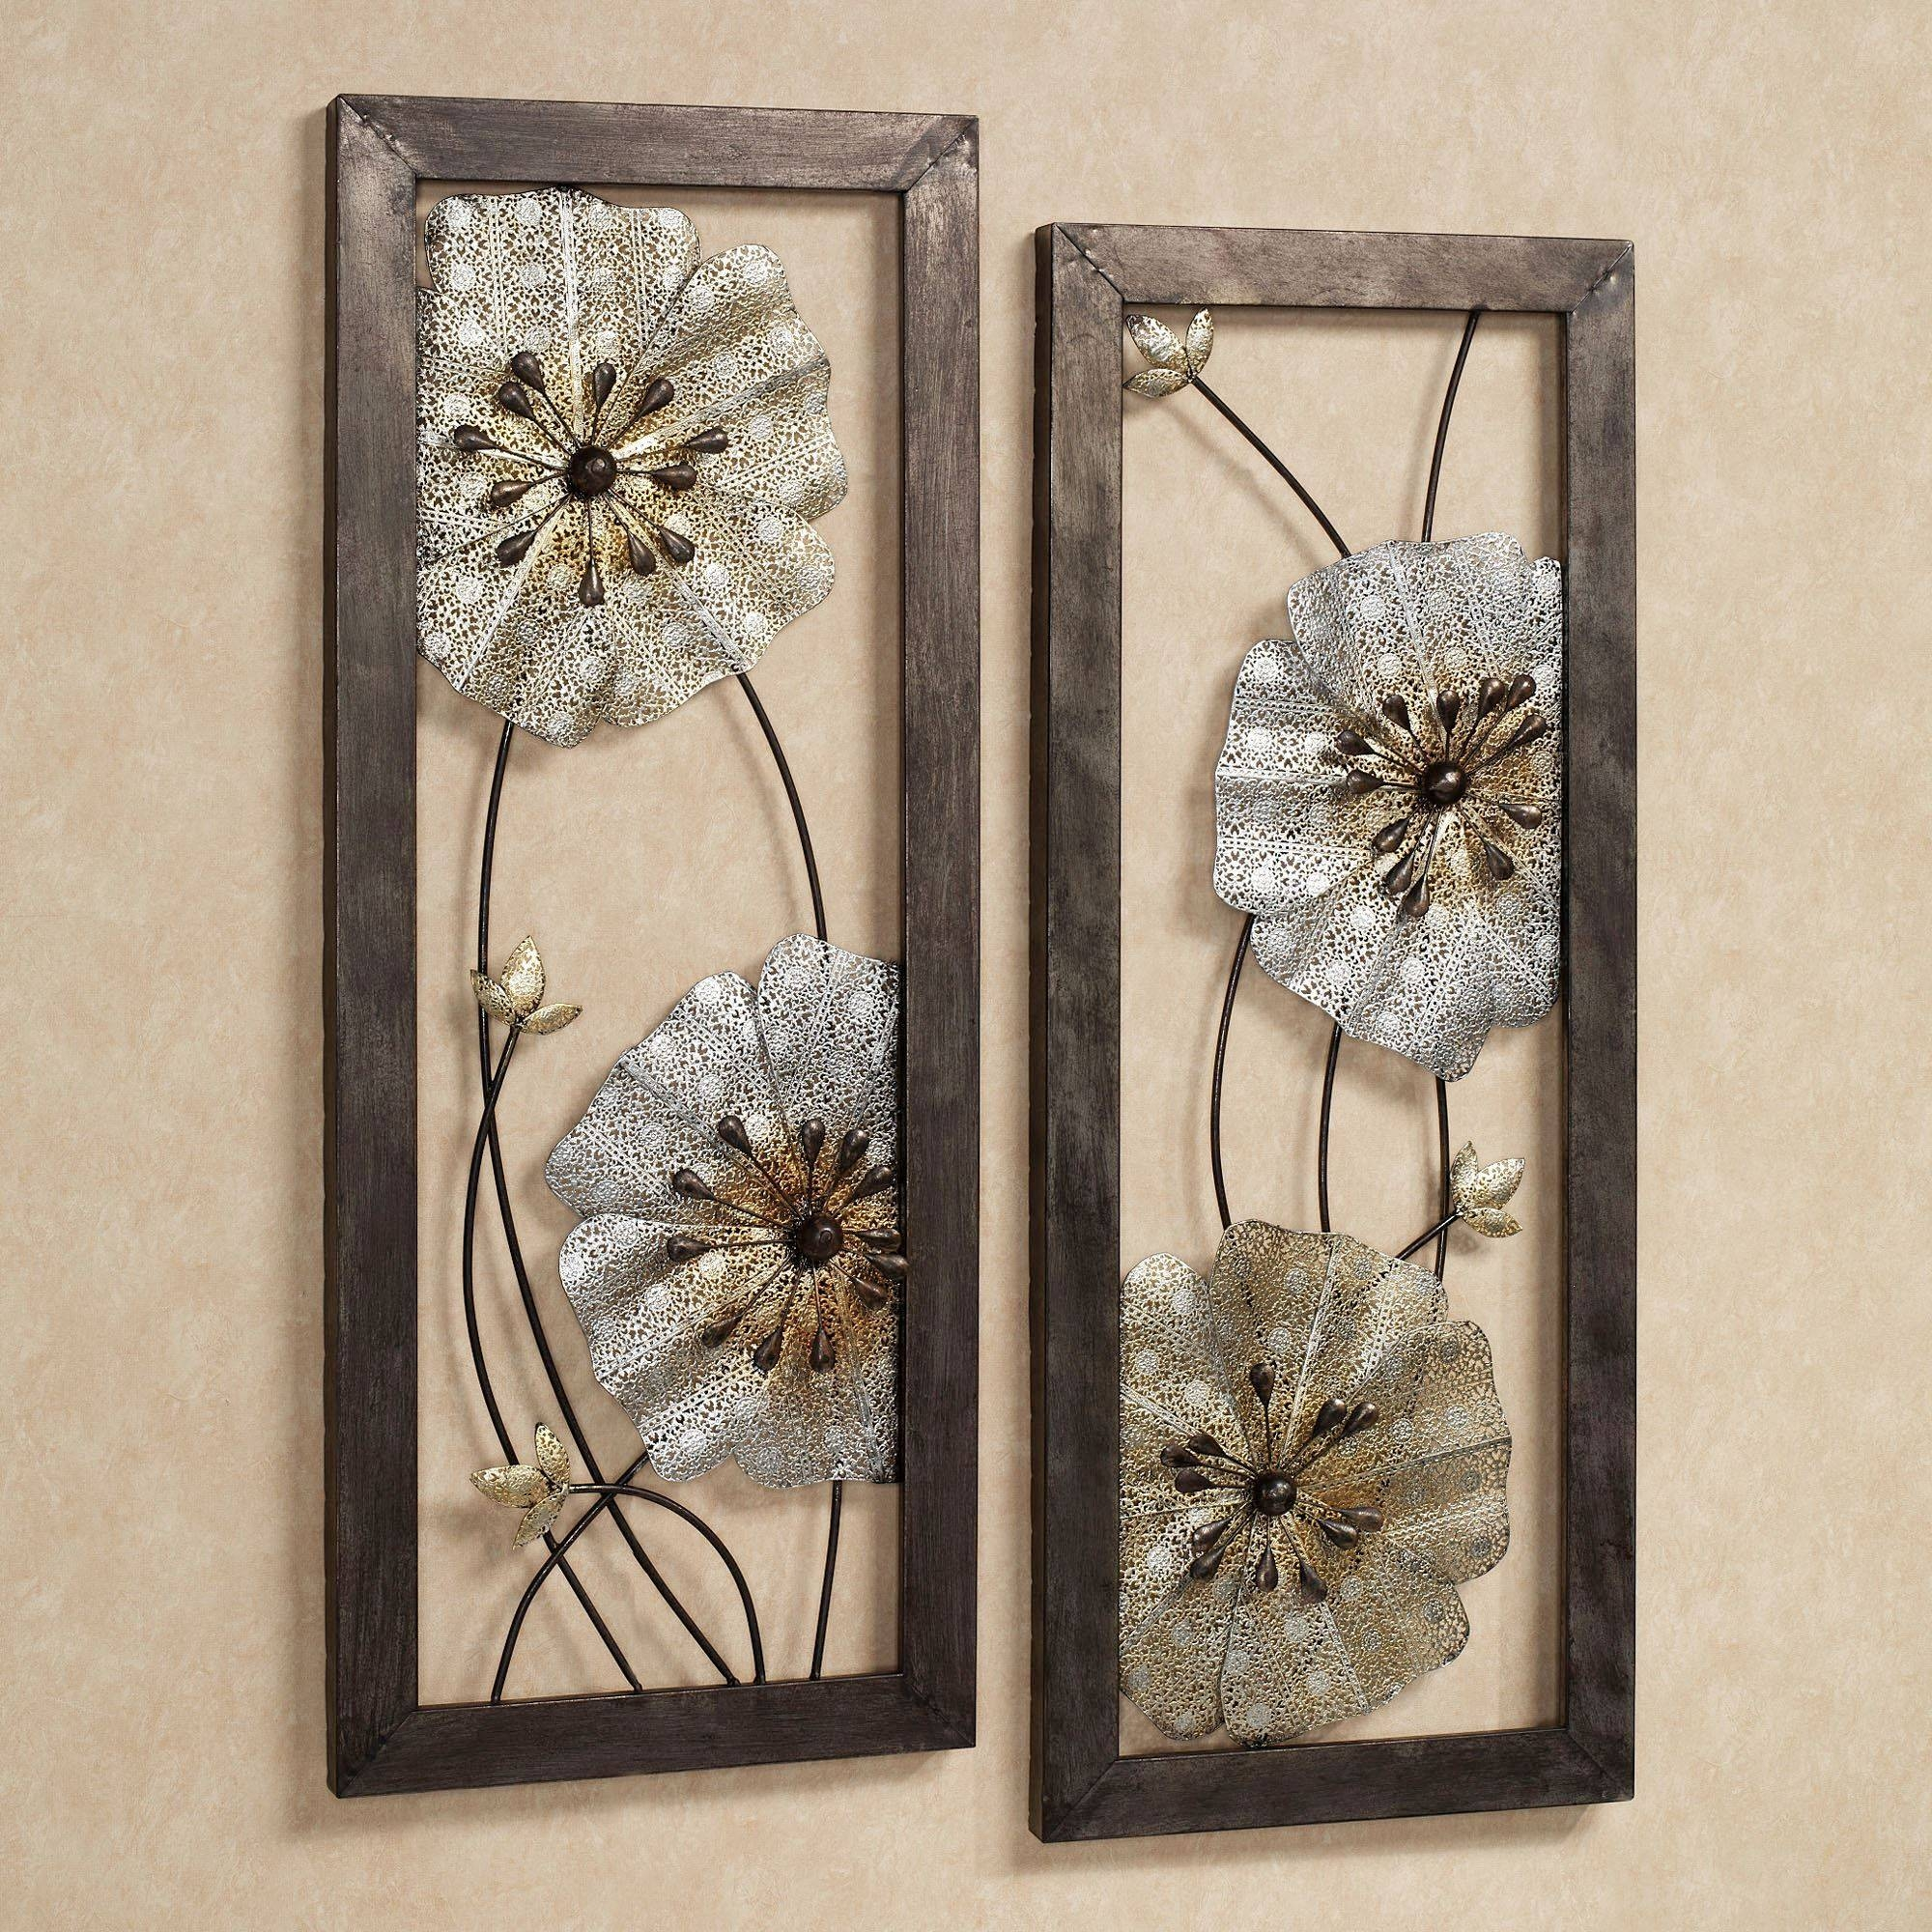 Malacia Openwork Floral Metal Wall Art Set Intended For Best And Newest Floral Metal Wall Art (View 12 of 20)